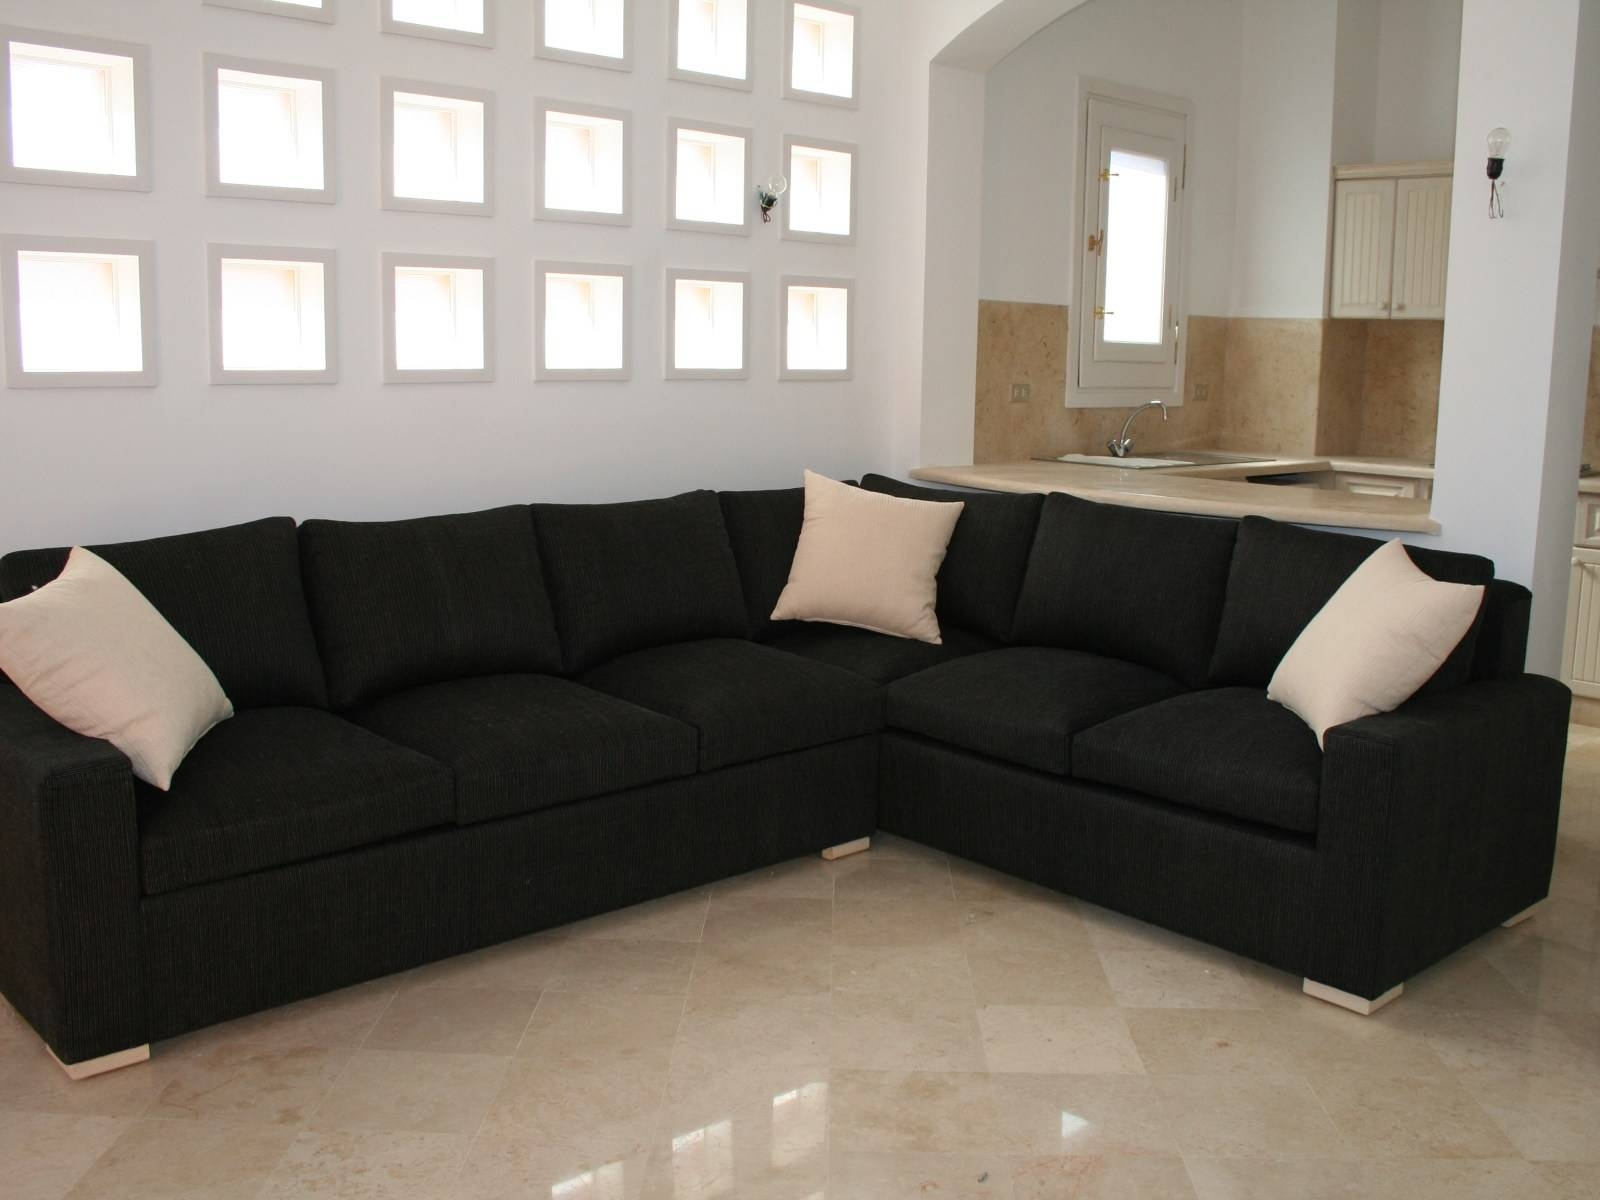 ▻ Sofa : 40 Black Fabric L Shaped Sectional Couch With Square regarding L Shaped Fabric Sofas (Image 30 of 30)